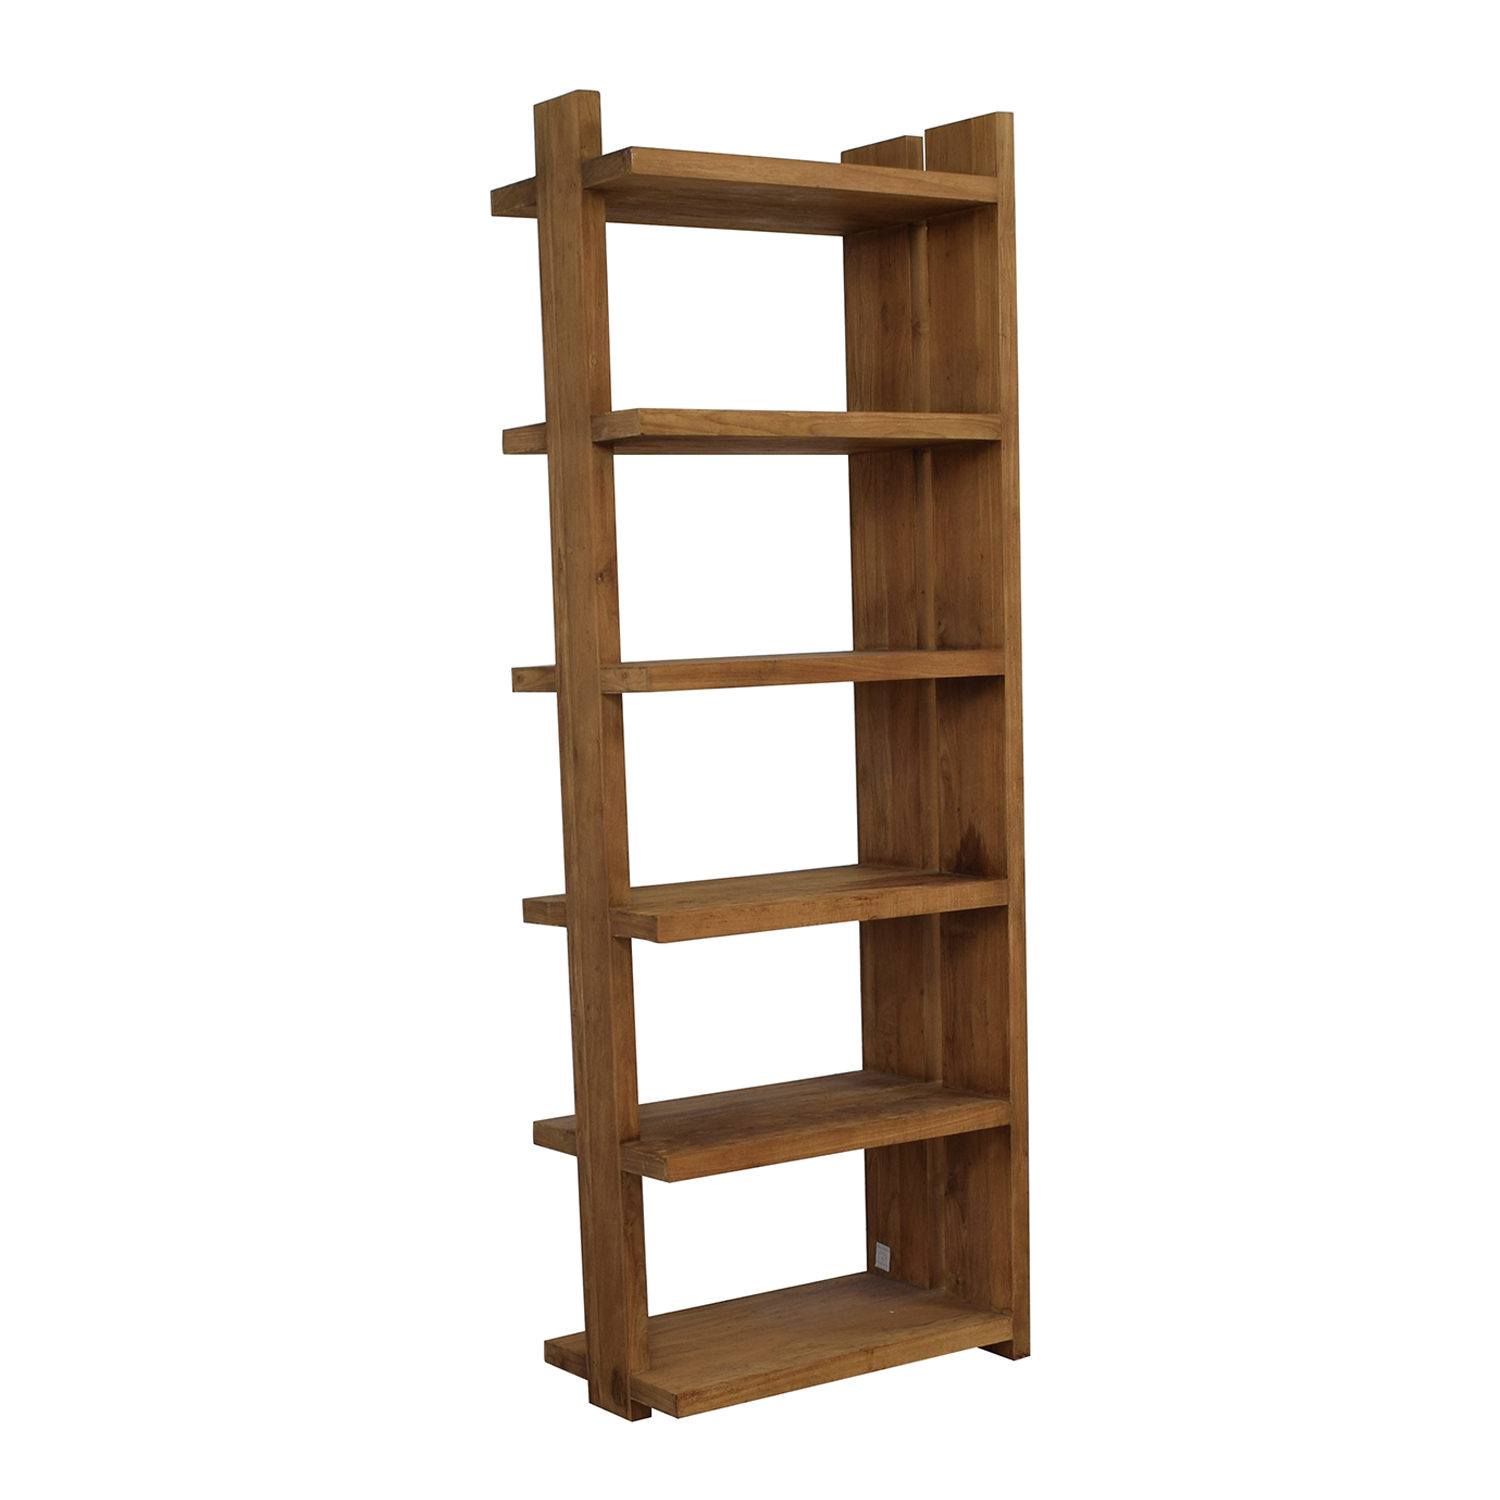 ABC Carpet & Home ABC Carpet & Home Harmony Etagere Bookcases for sale